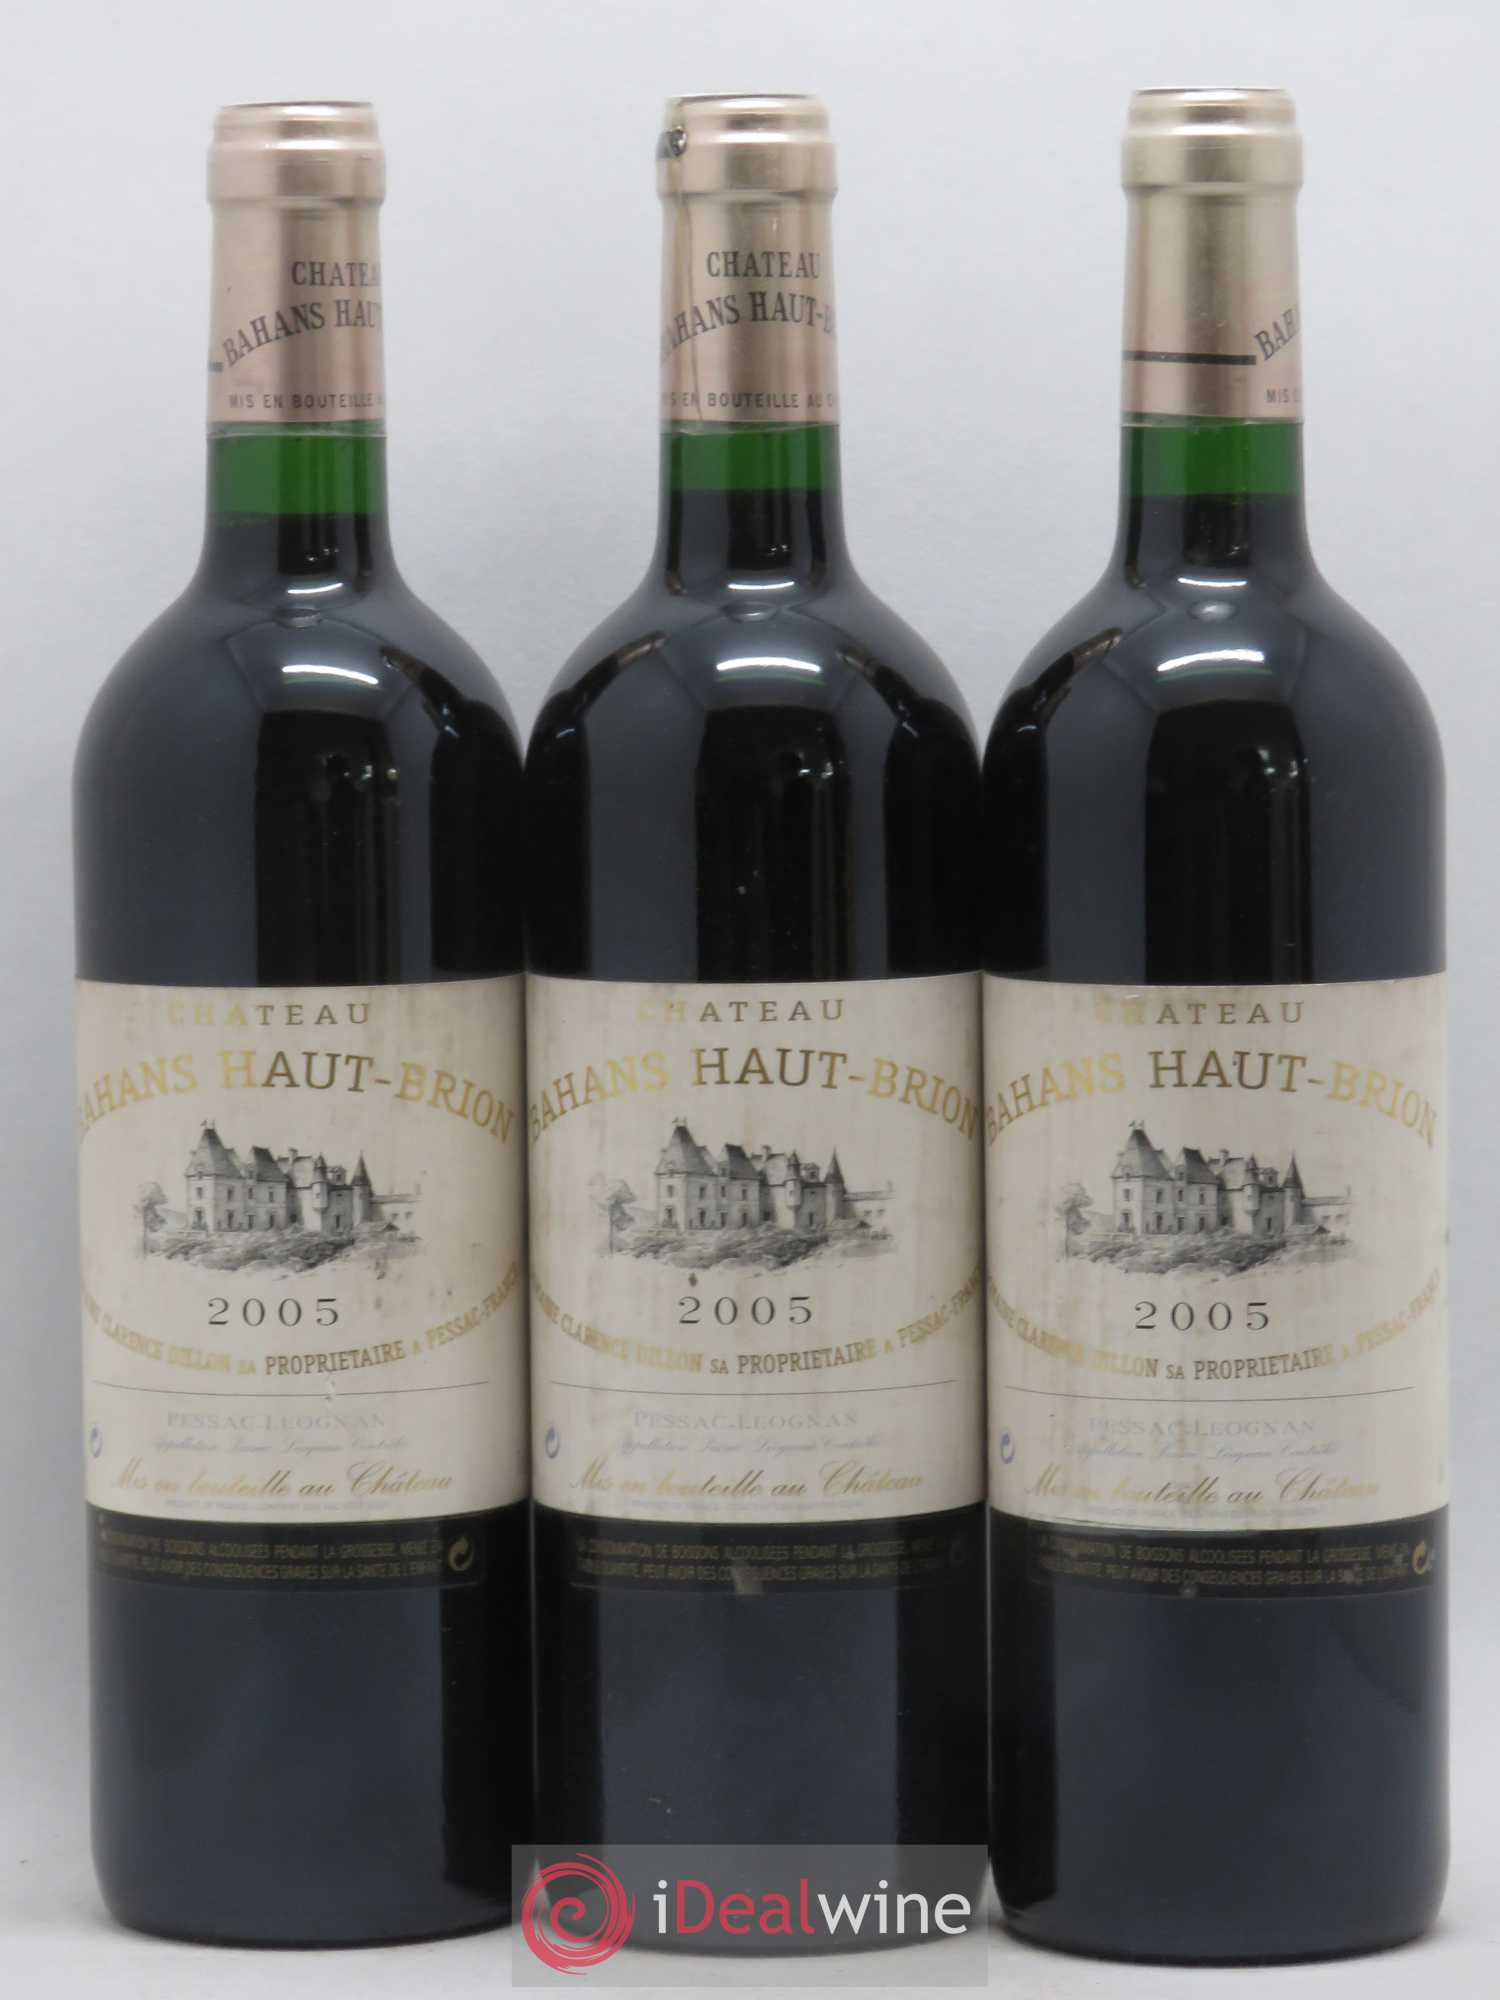 Clarence (Bahans) de Haut-Brion Second Vin  2005 - Lot de 3 Bouteilles